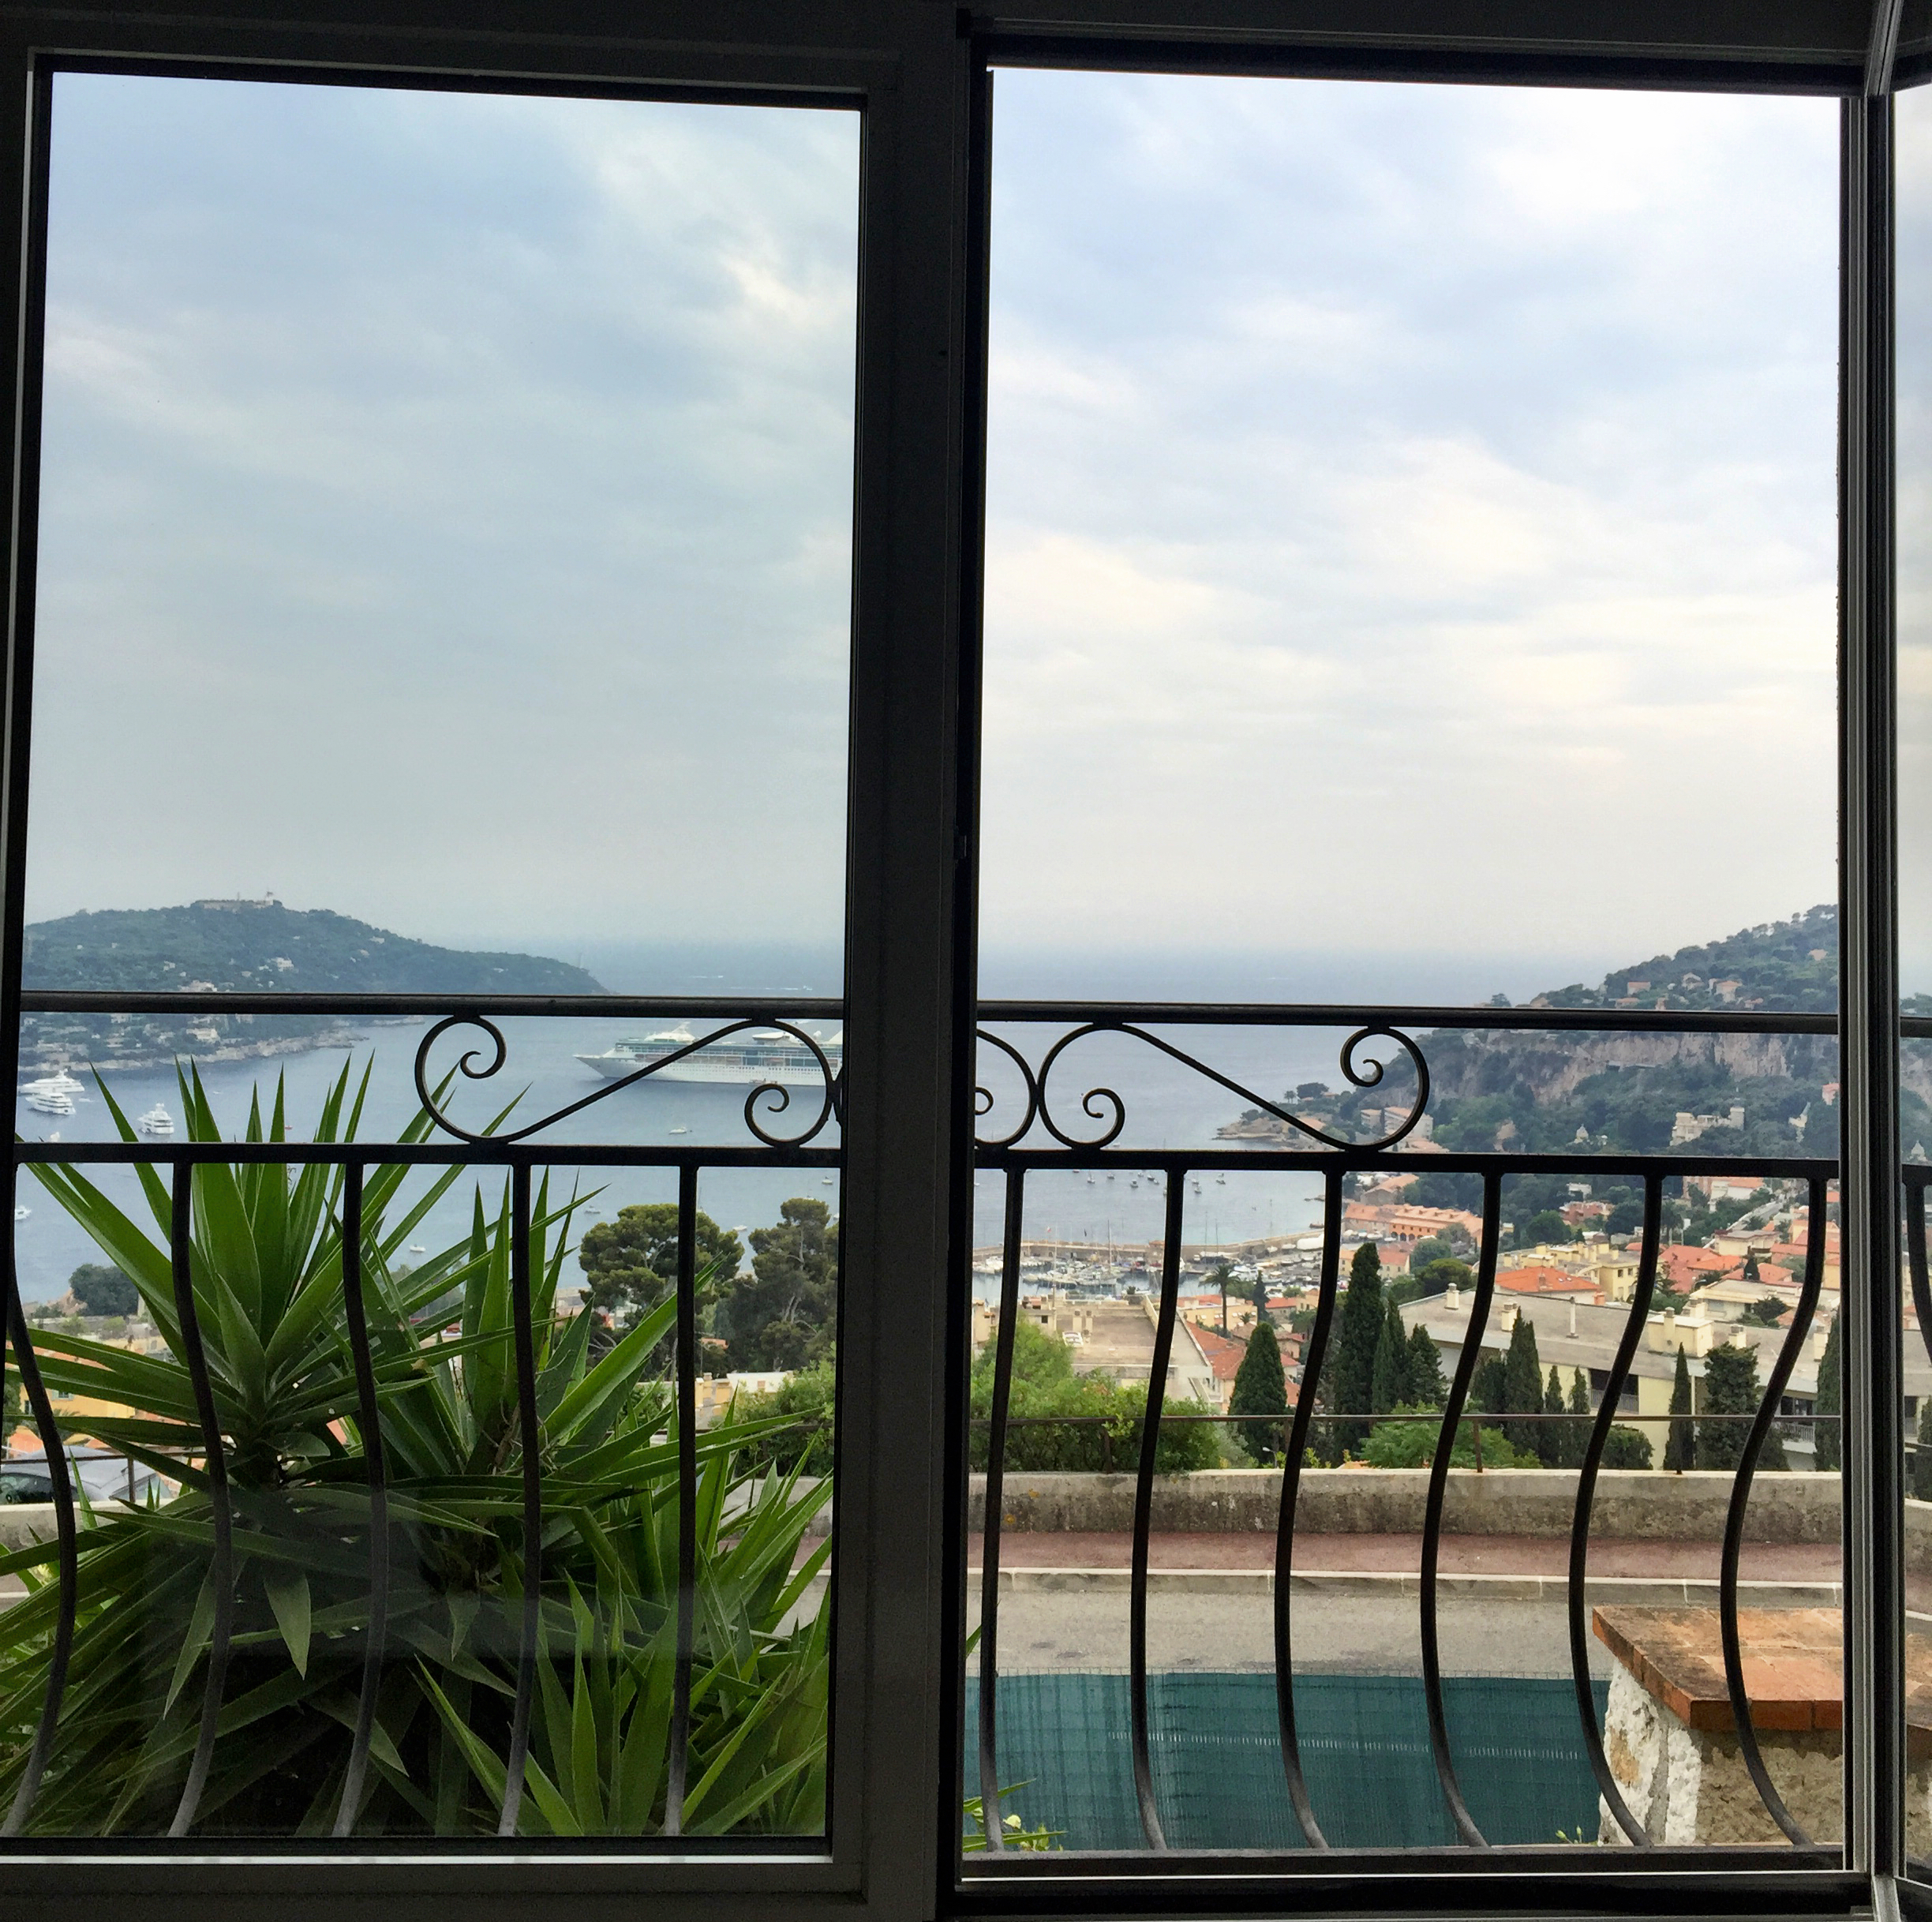 VILLEFRANCHE-SUR-MER | FRENCH RIVIERA | WE LOVE FOOD, IT'S ALL WE EAT